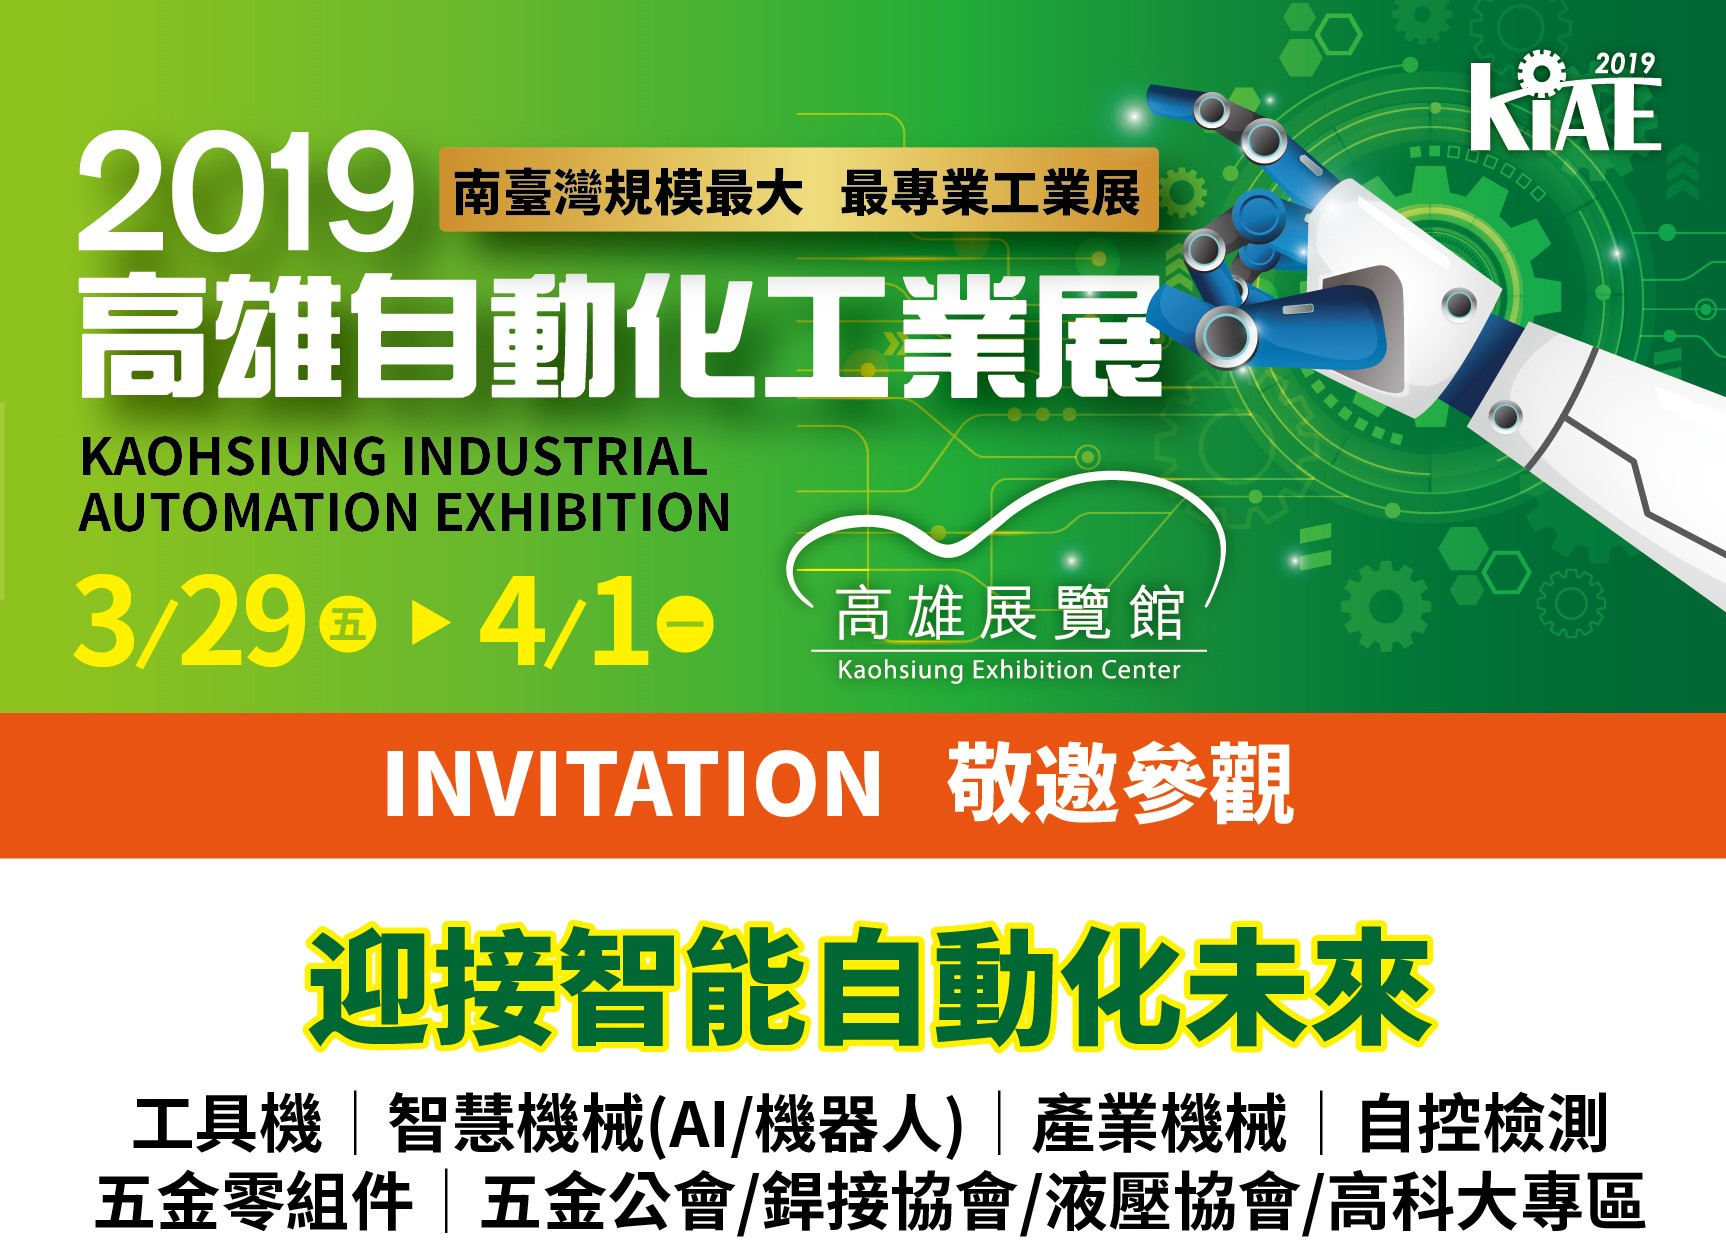 ind_images/Exhibitions/2019/20190329_Kaohsiung_International_Industrial_Automation_Exhibition_1.jpg